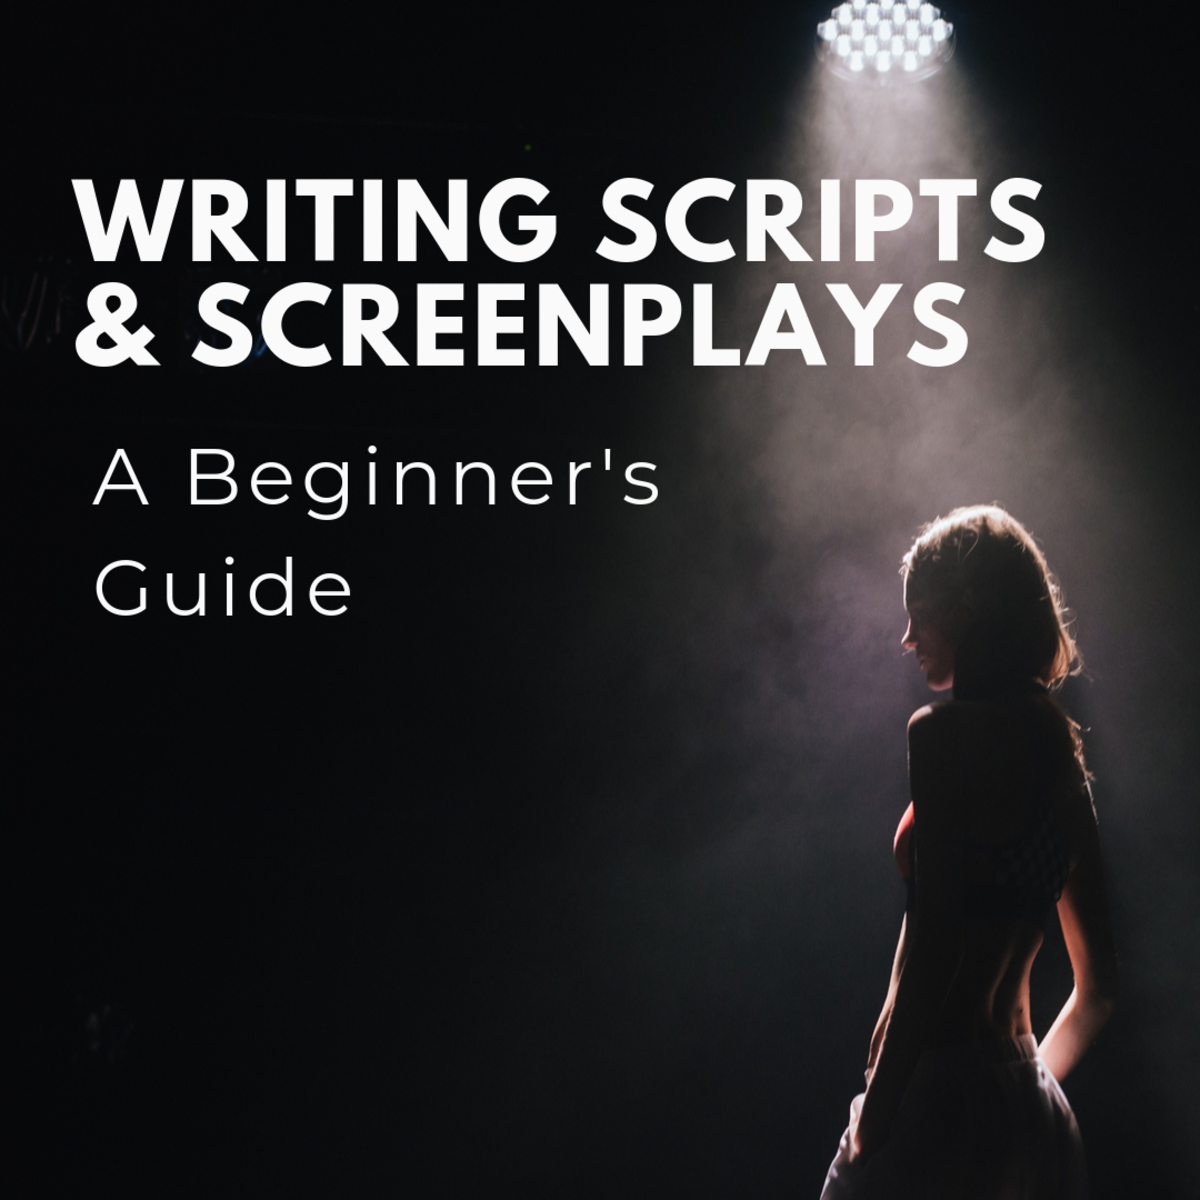 A Beginner's Guide to Writing Scripts and Screenplays